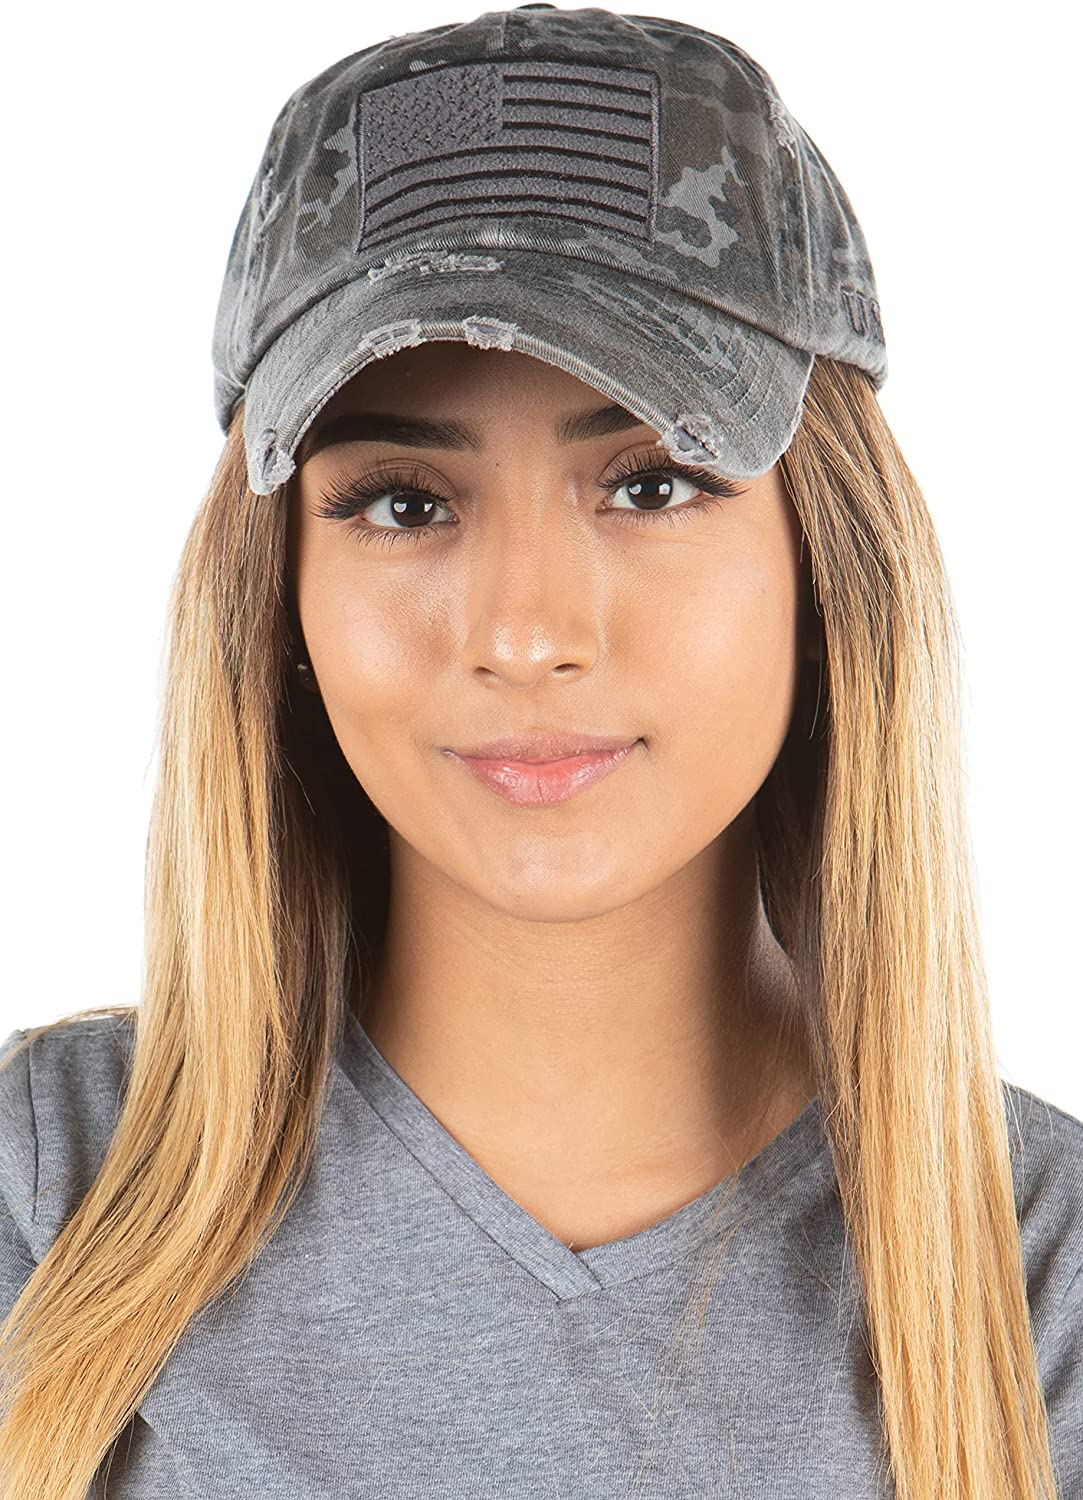 Distressed White USA Flag Adjustable Baseball Cap Sport Hats for Men and Womens